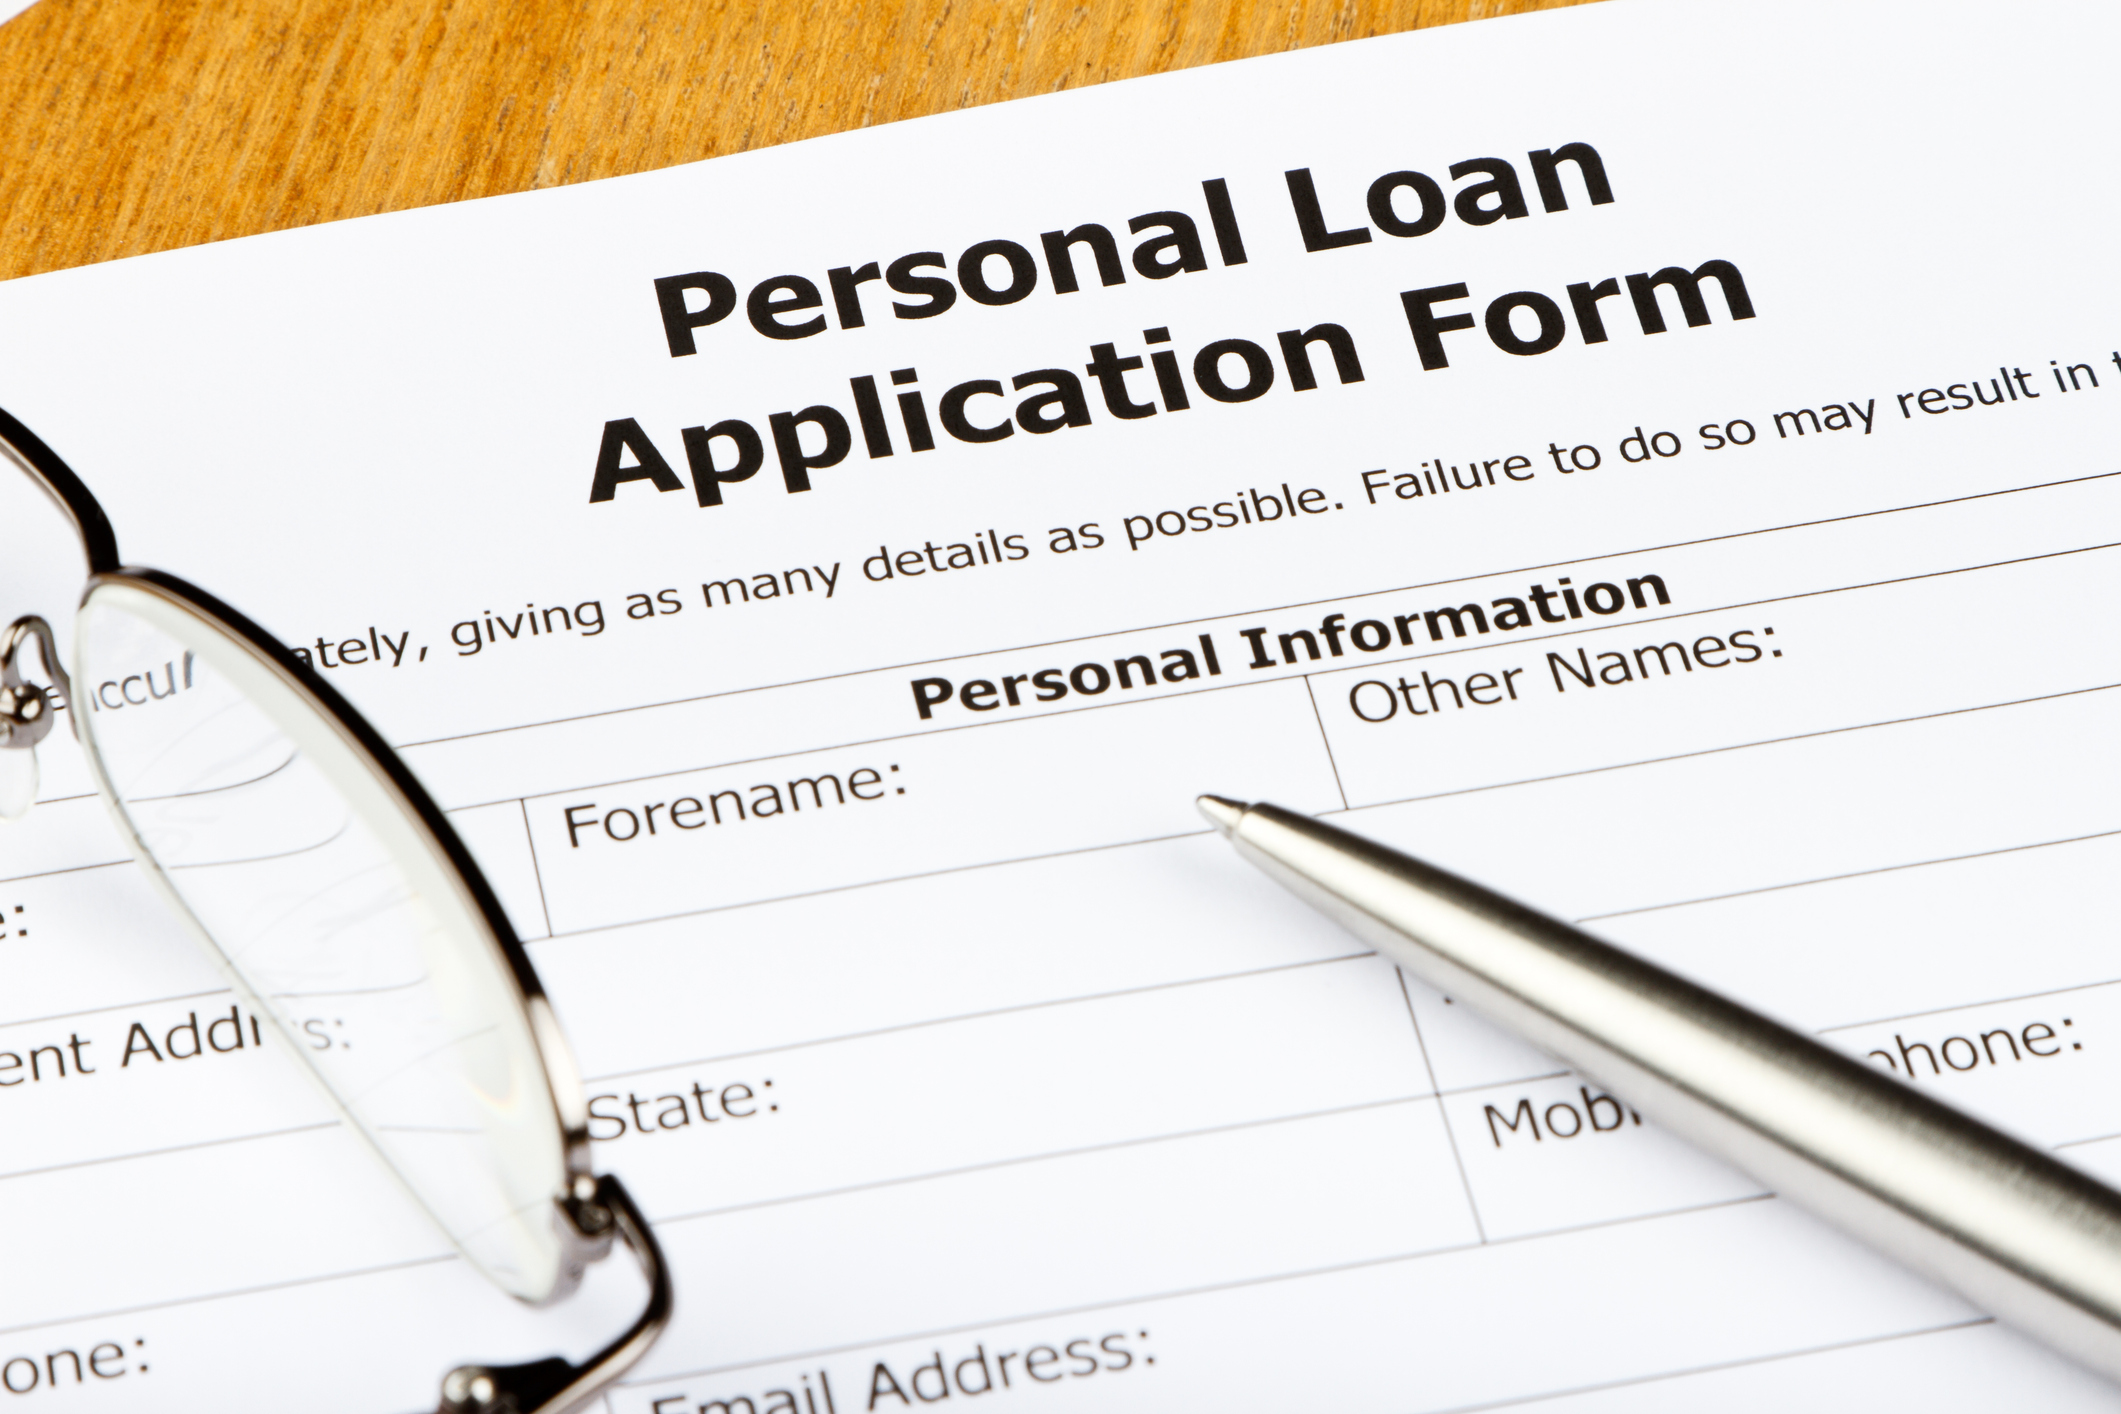 Take a Personal Loan to Secure a Mortgage with Bad Credit